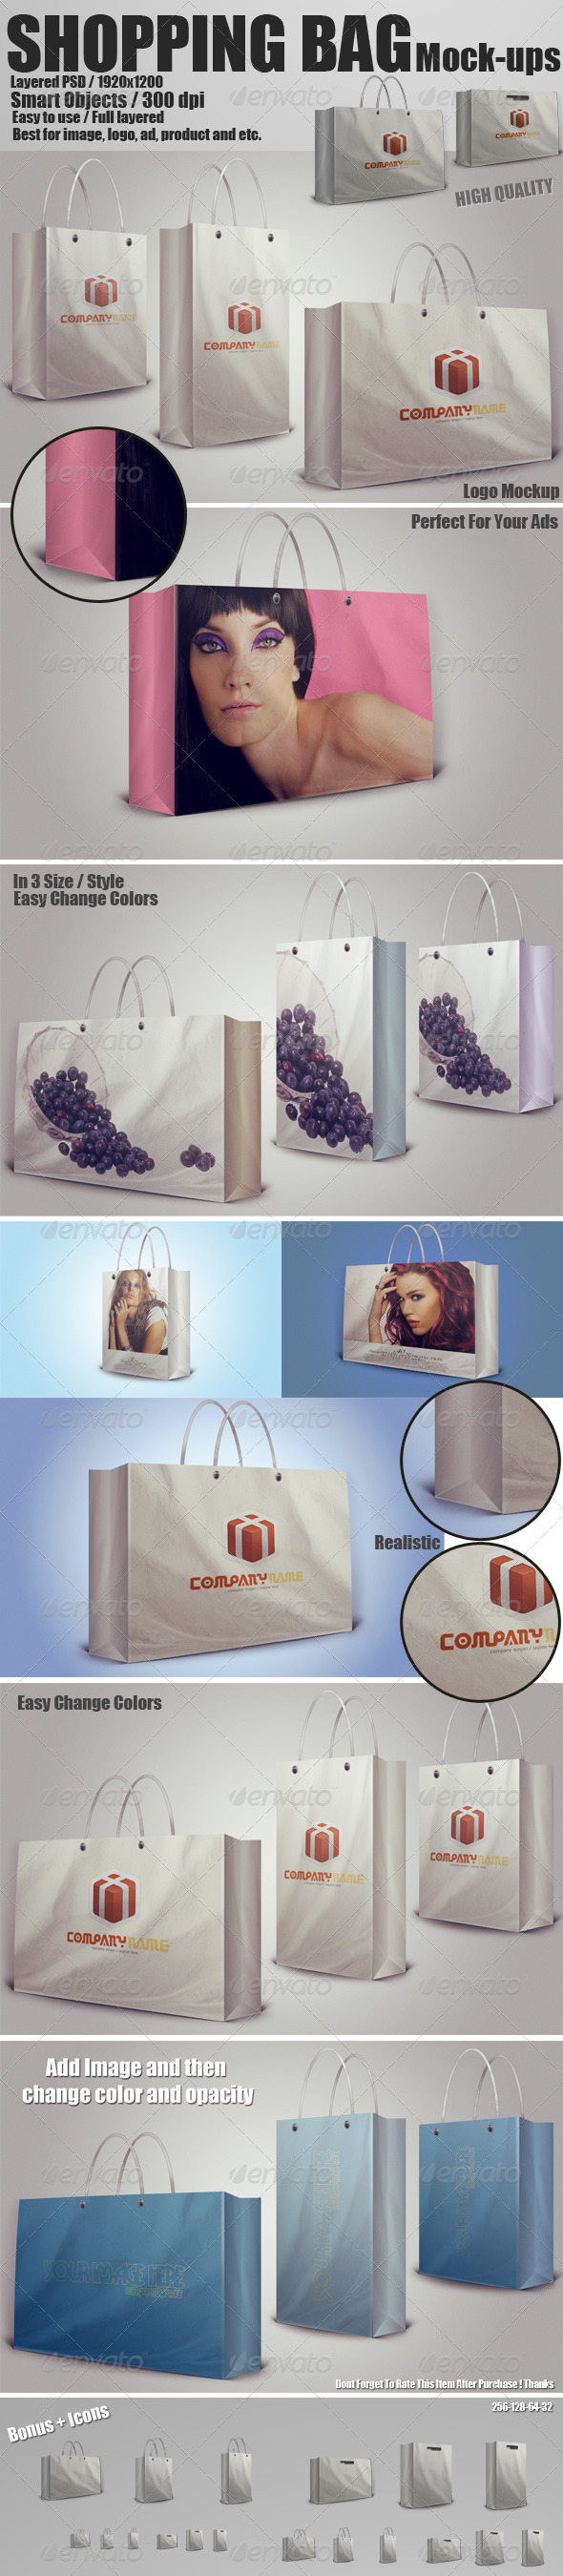 Shopping Bag Mockups PSD - Miscellaneous Packaging